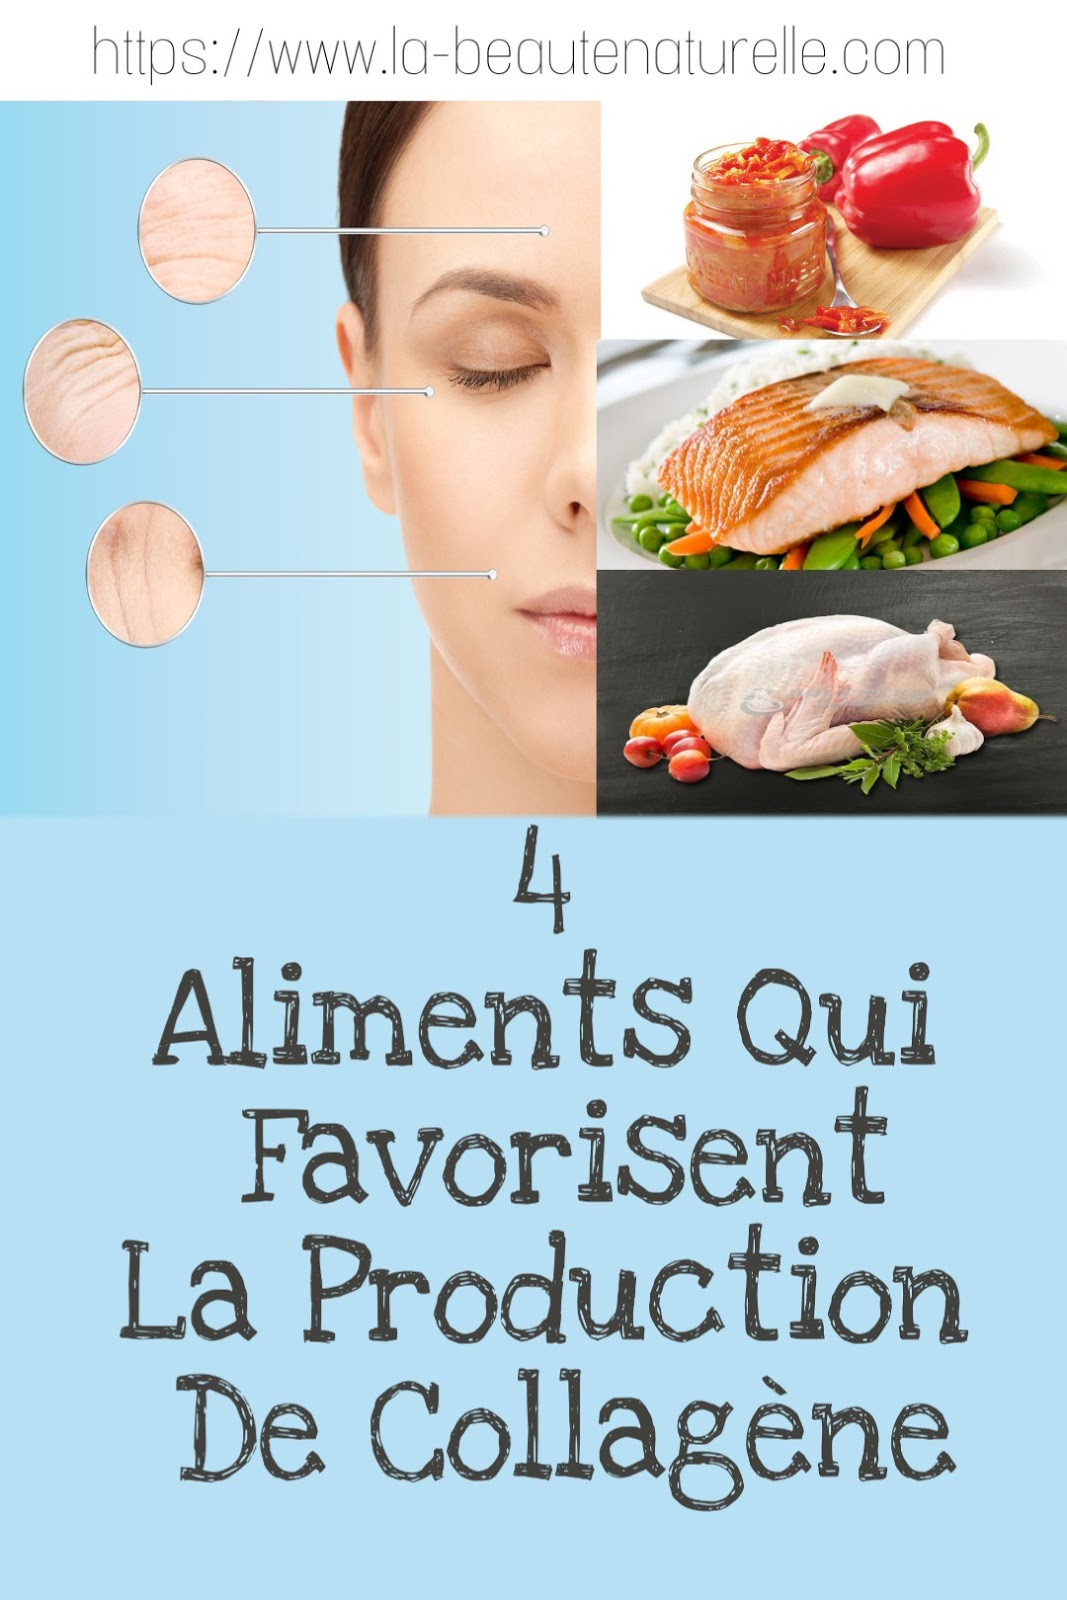 4 Aliments Qui Favorisent La Production De Collagène